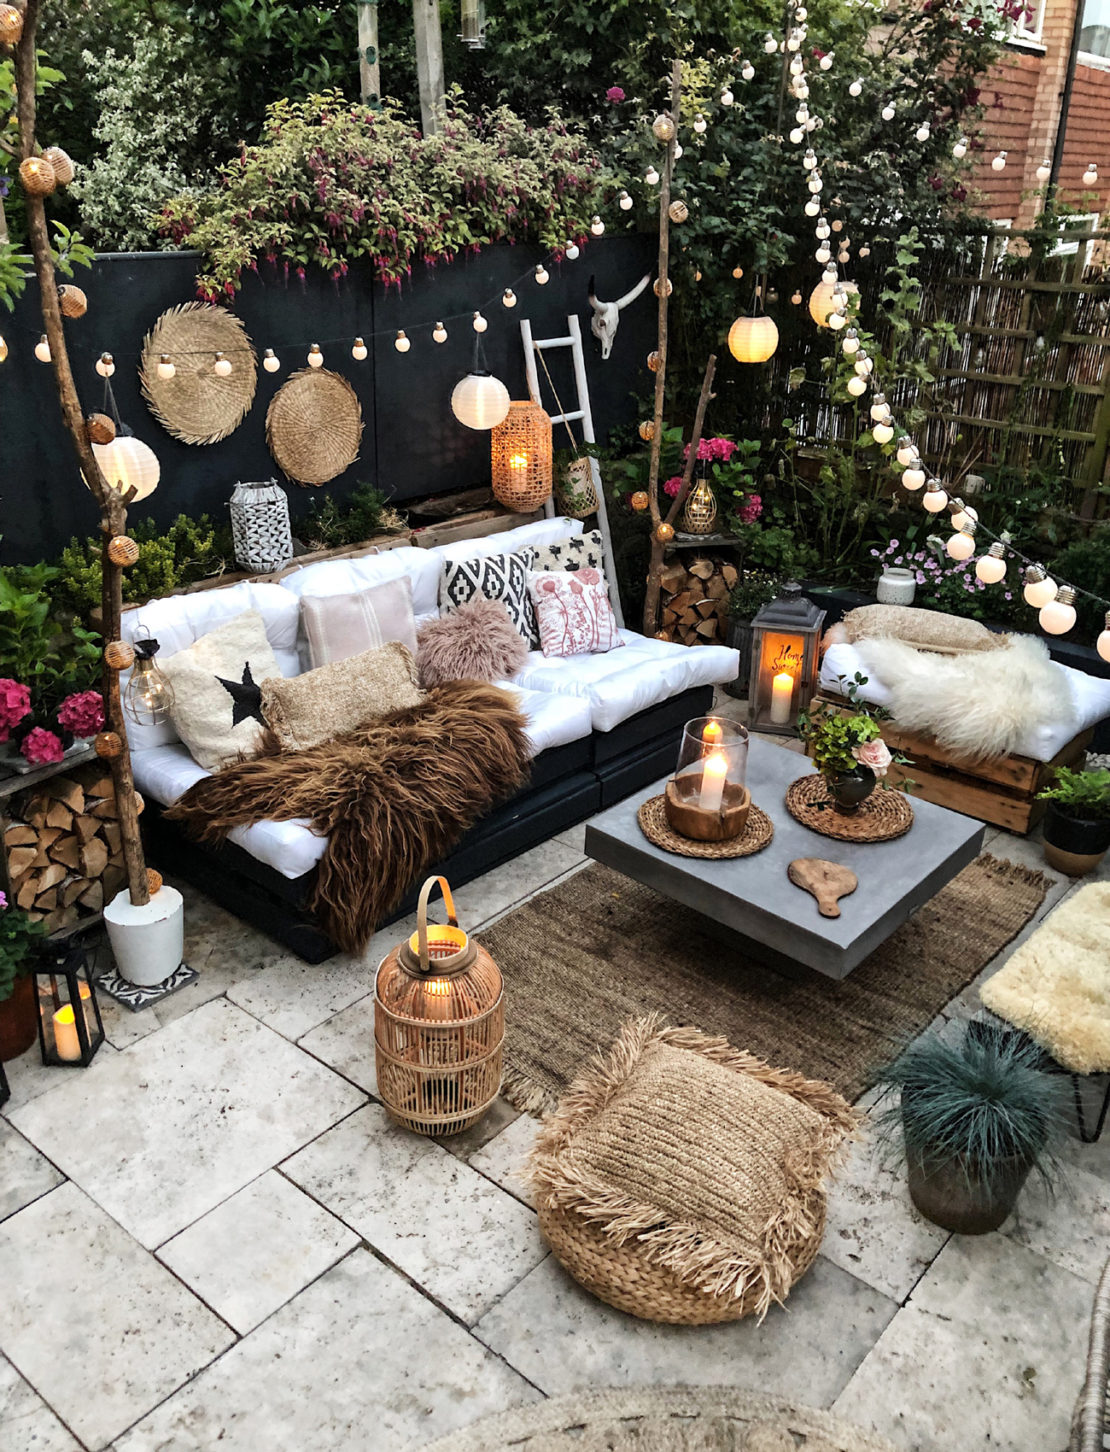 bohemian garden ideas - an eclectic seating area with assorted scatter cushions, string lights and candles